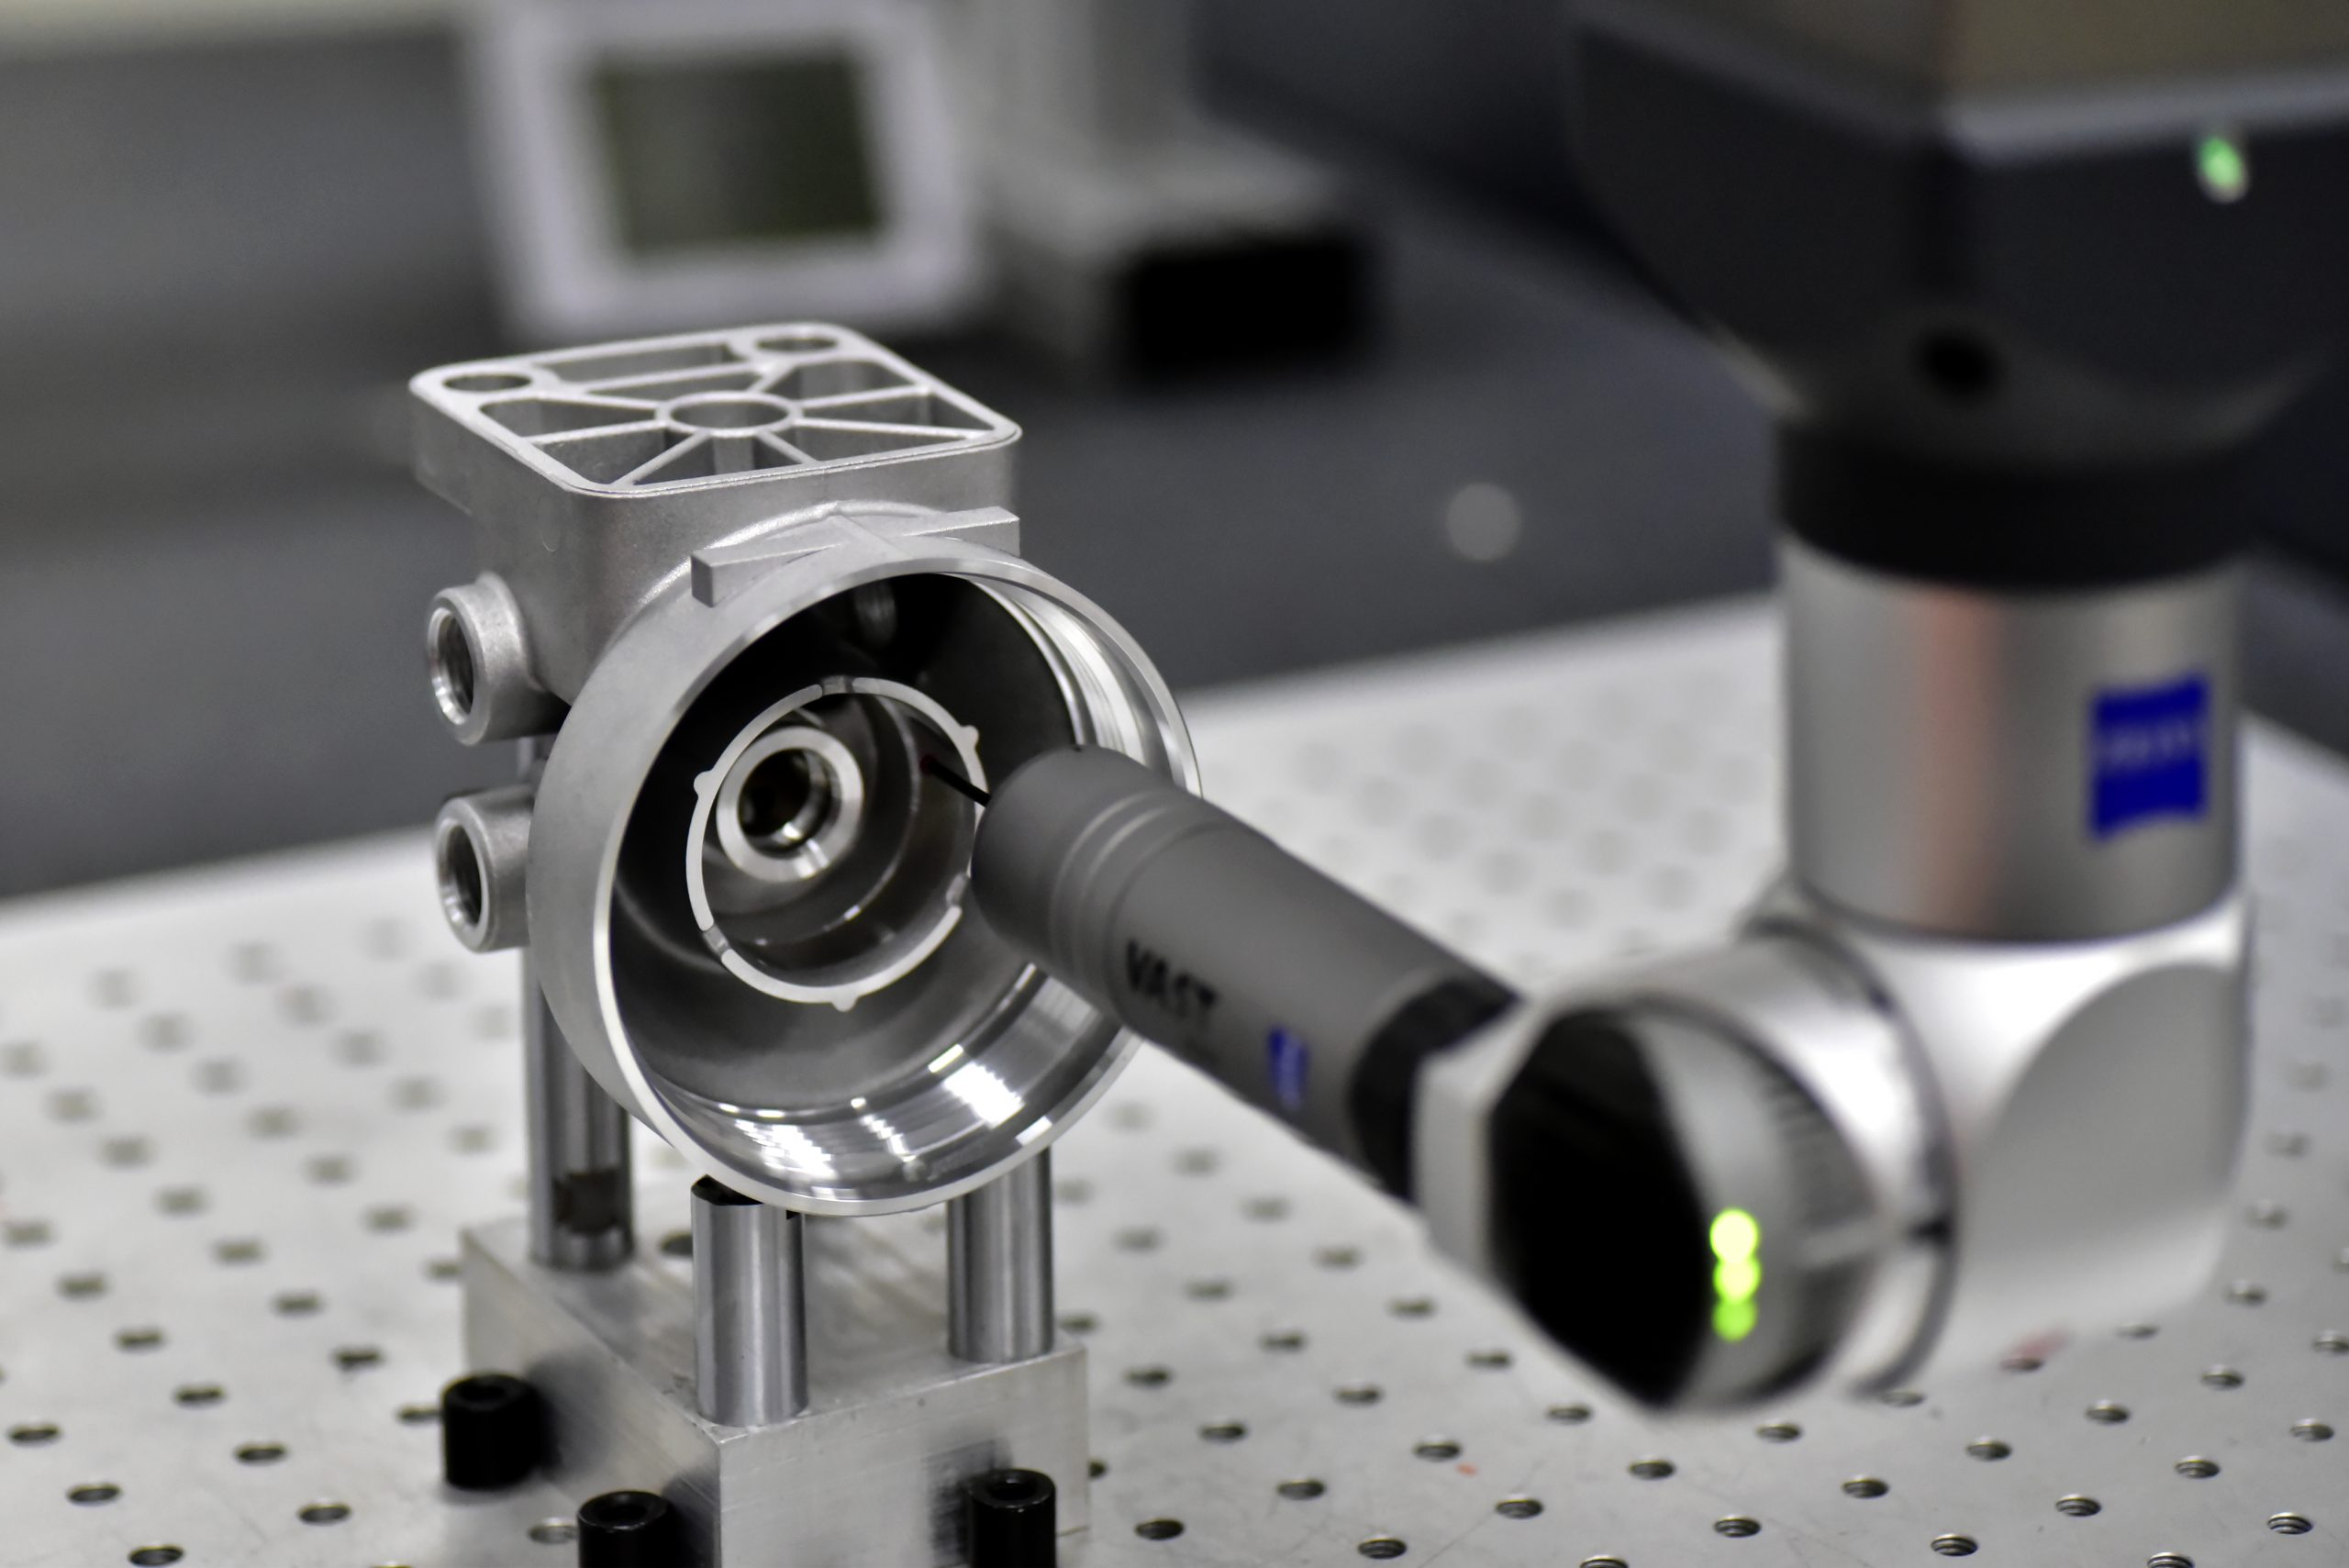 Carl Zeiss CMM--Lab measurement